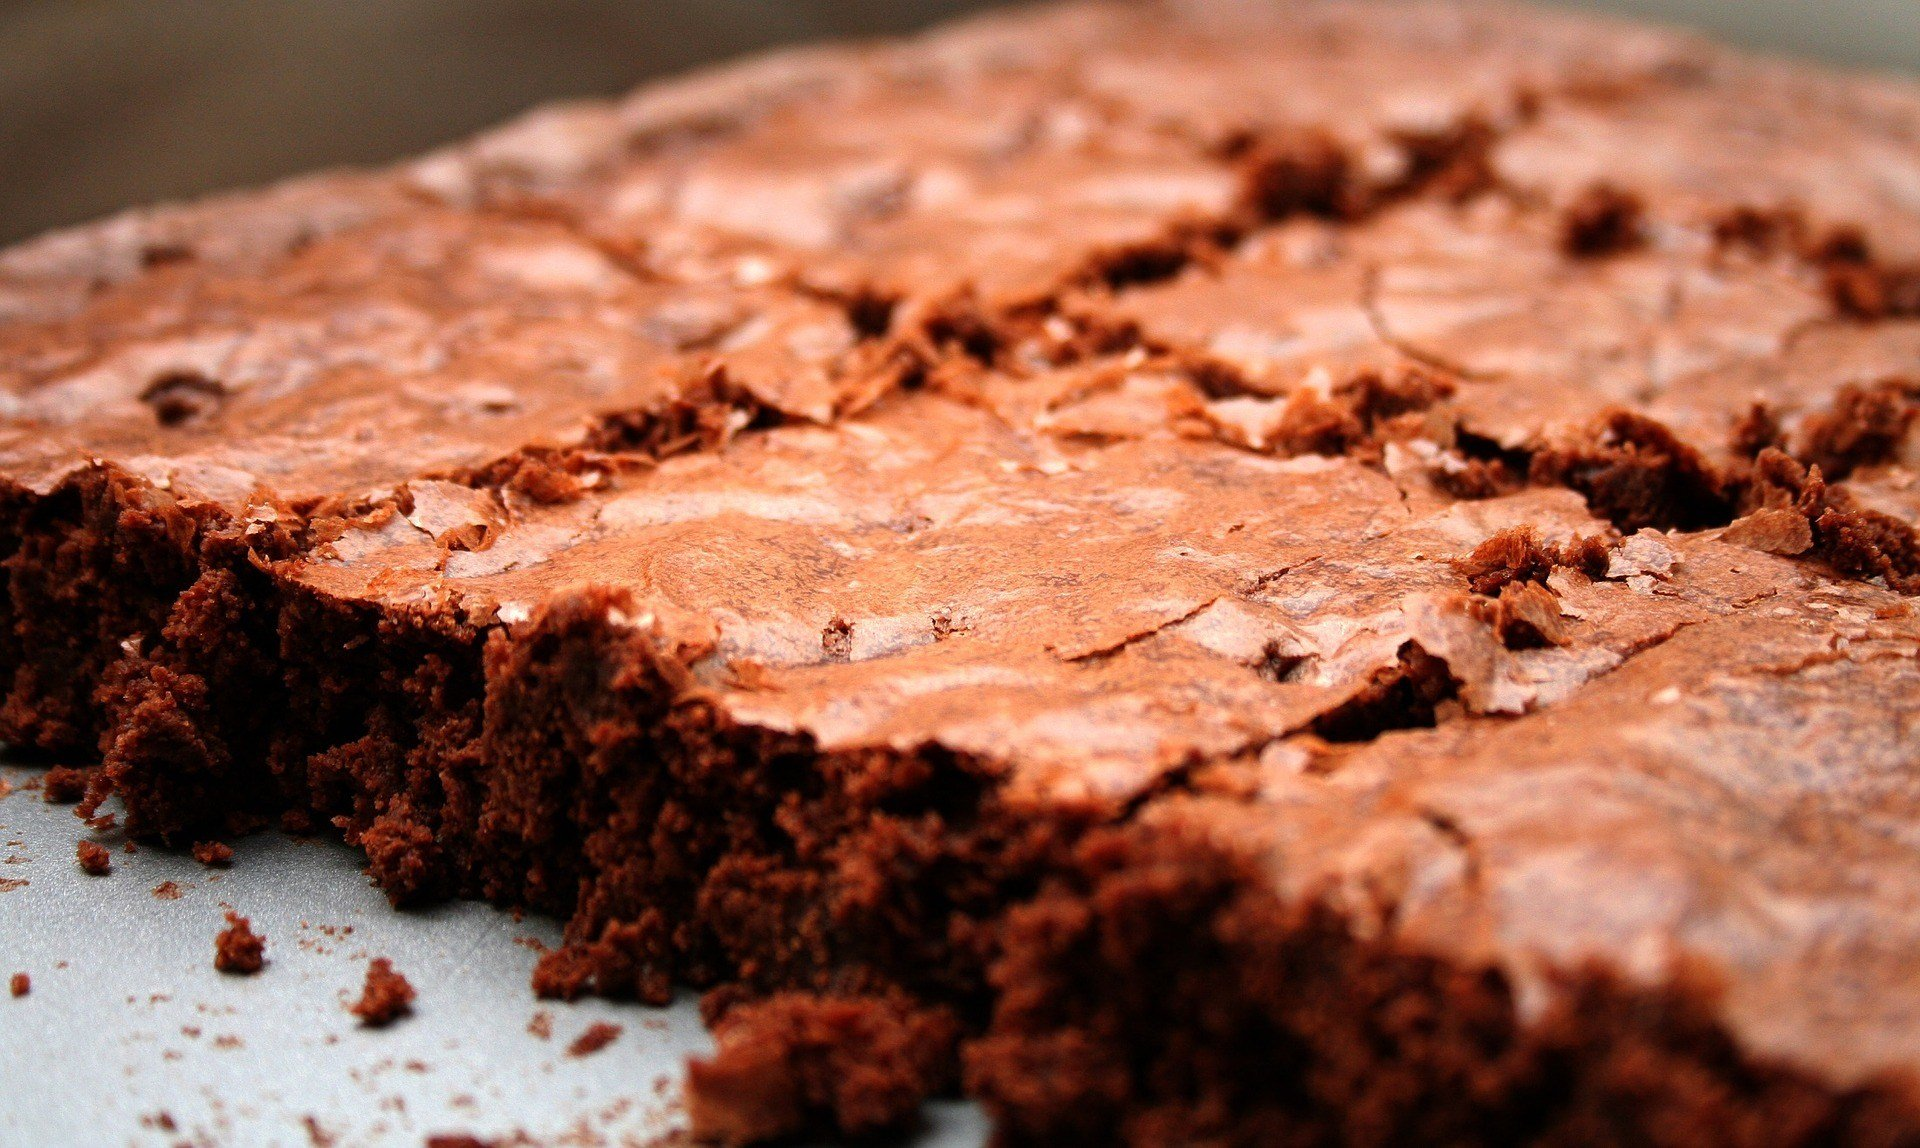 Hart says the woman faces no charges, but if anyone had eaten the brownies it could have been considered a criminal act. (Source: Pixabay)